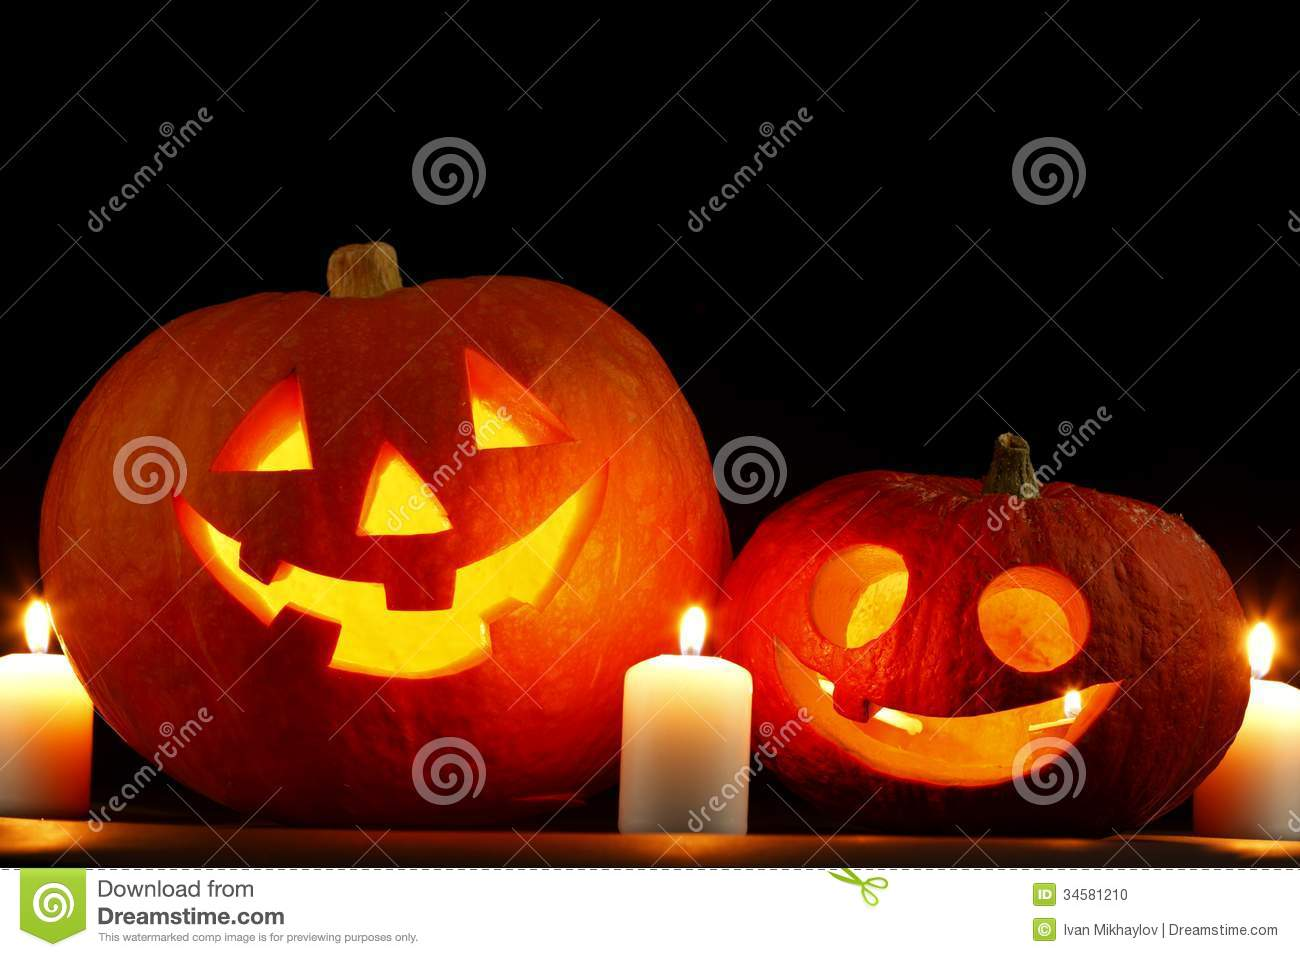 Halloween Pumpkins And Candles Stock Photo - Image: 34581210